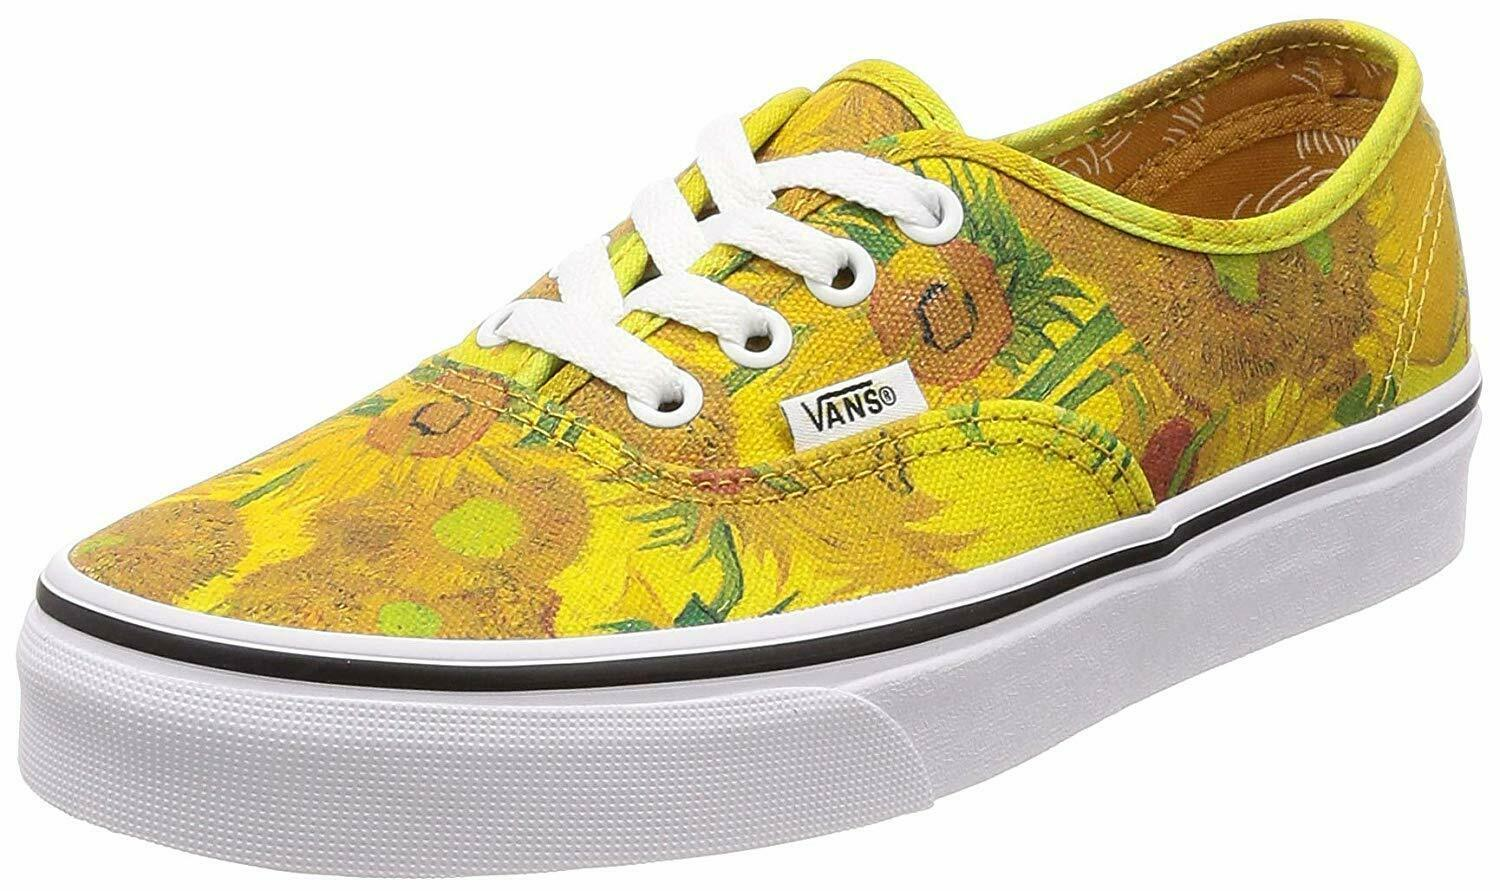 Vans Authentic Vincent Gogh Sunflowers Shoes MENS 3.5 WOMENS 5 new nwt